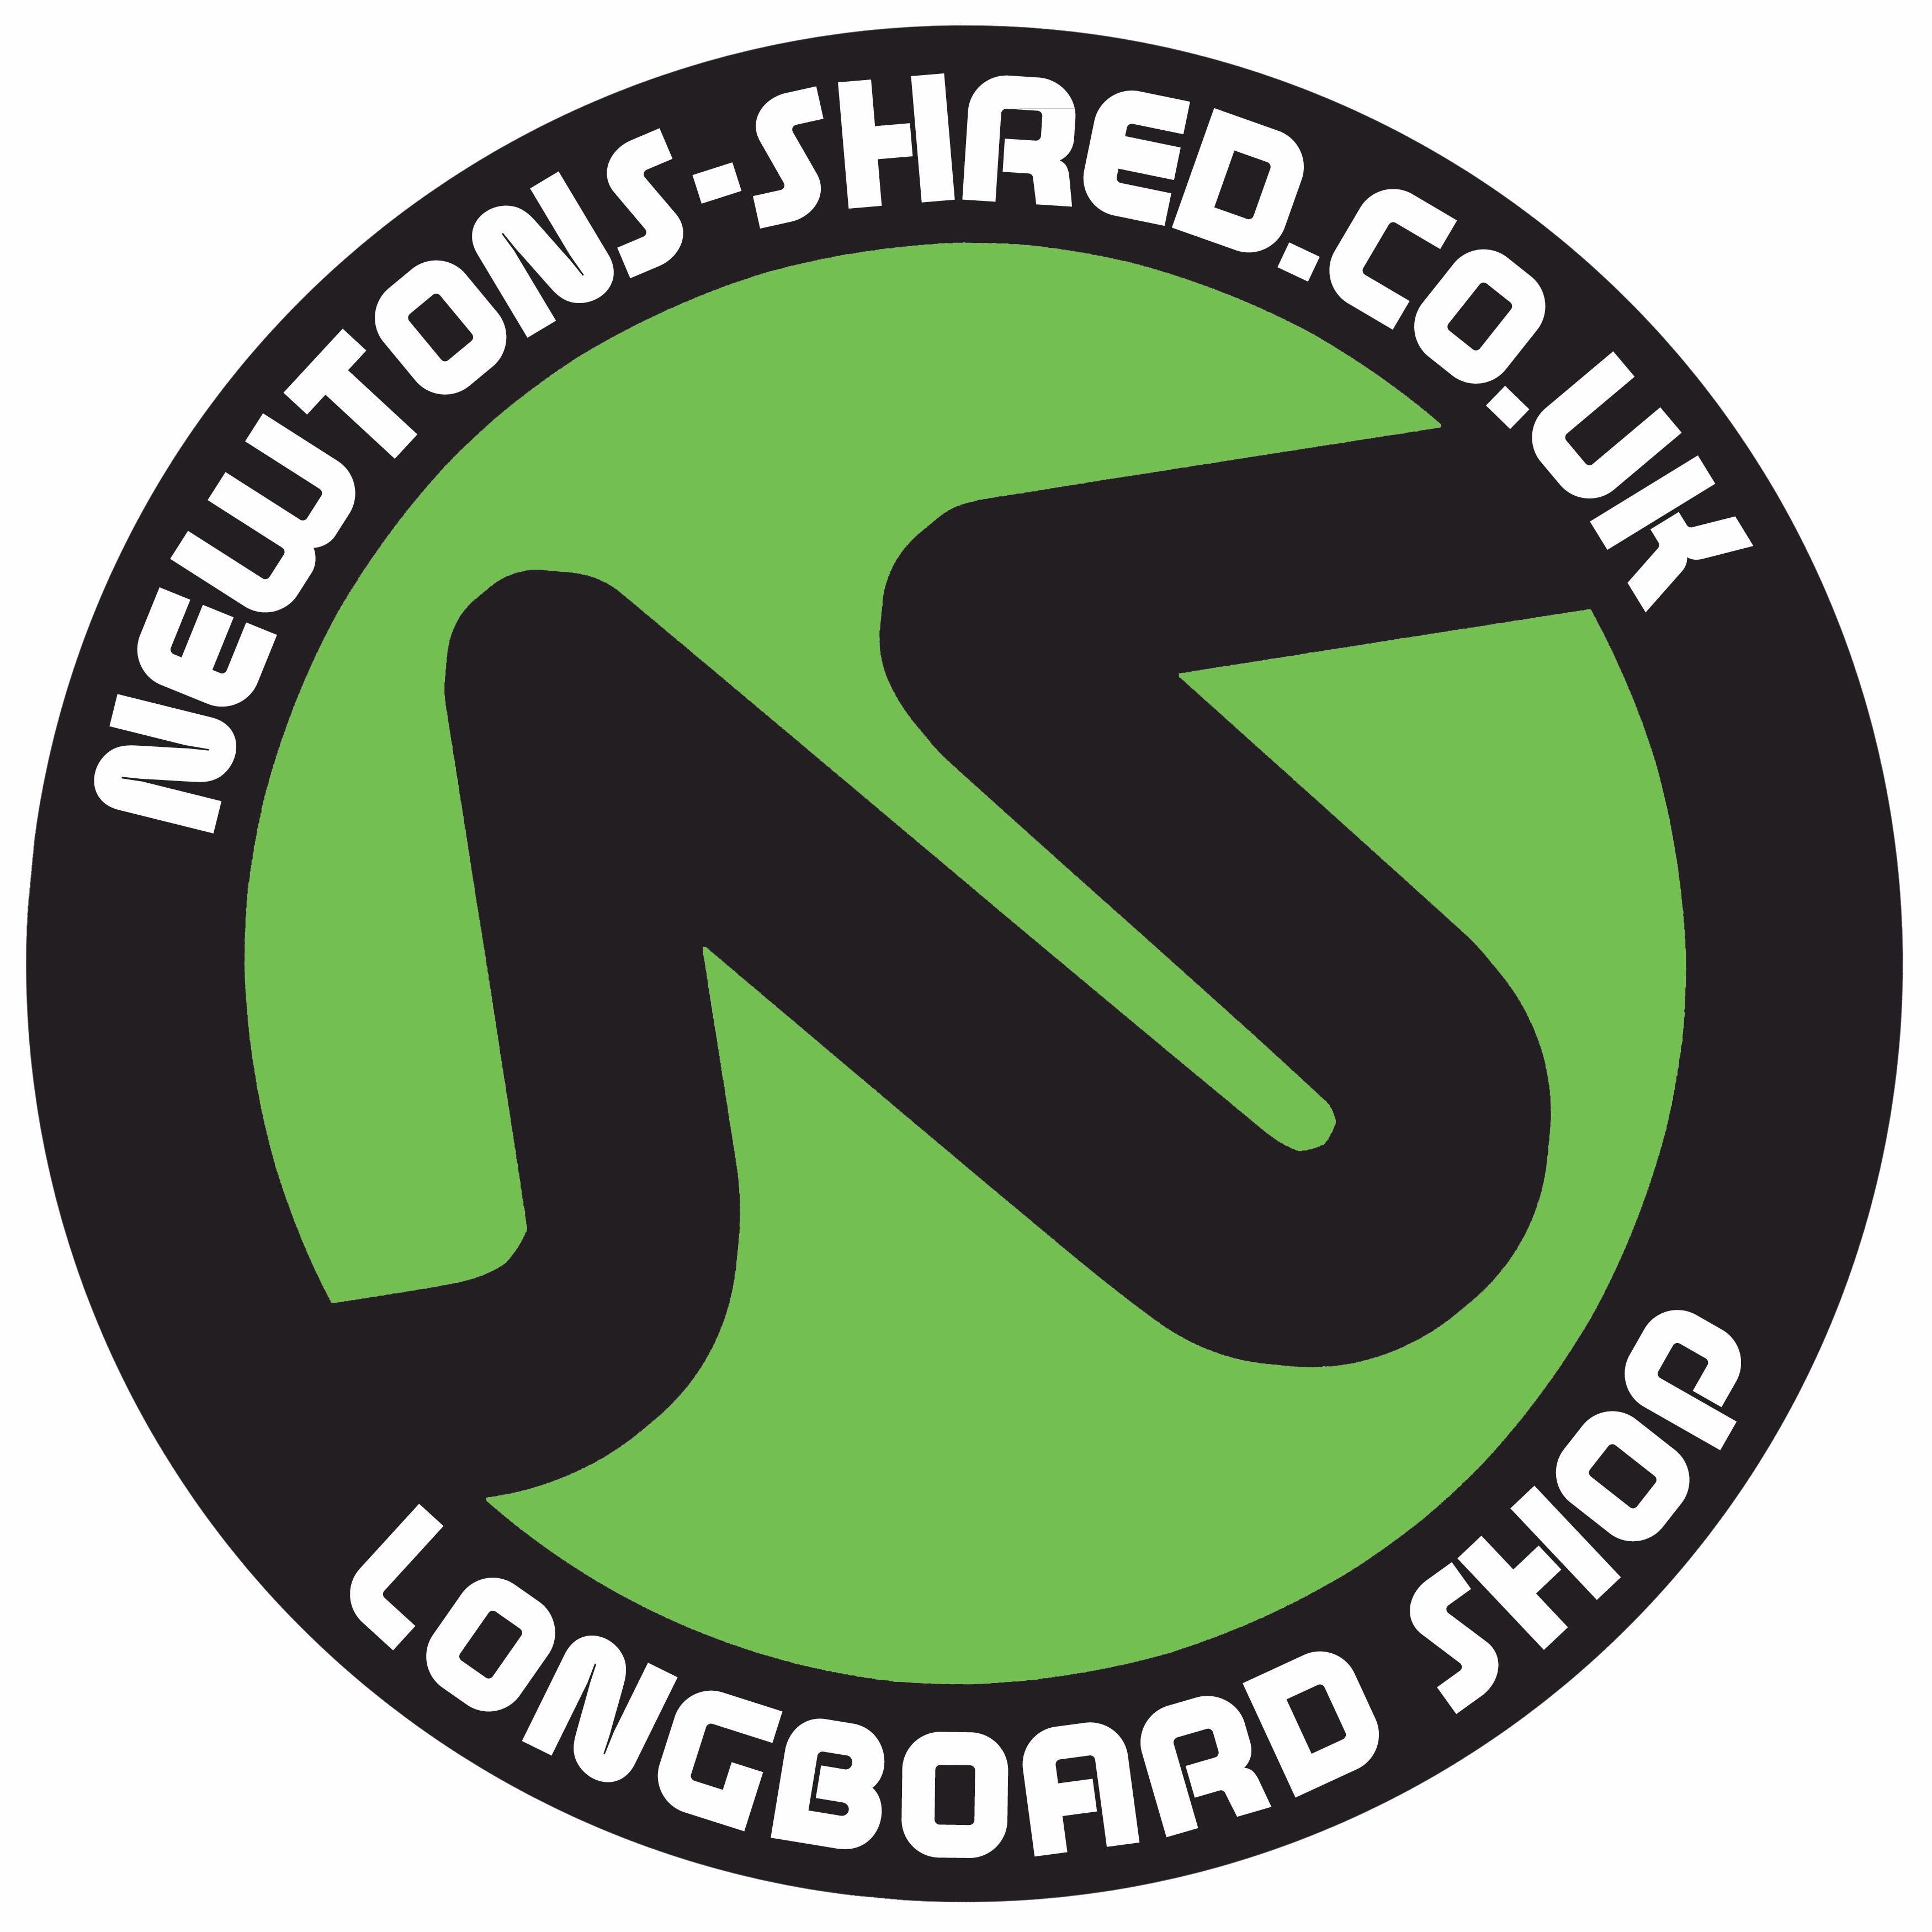 Newton's Shred Cast